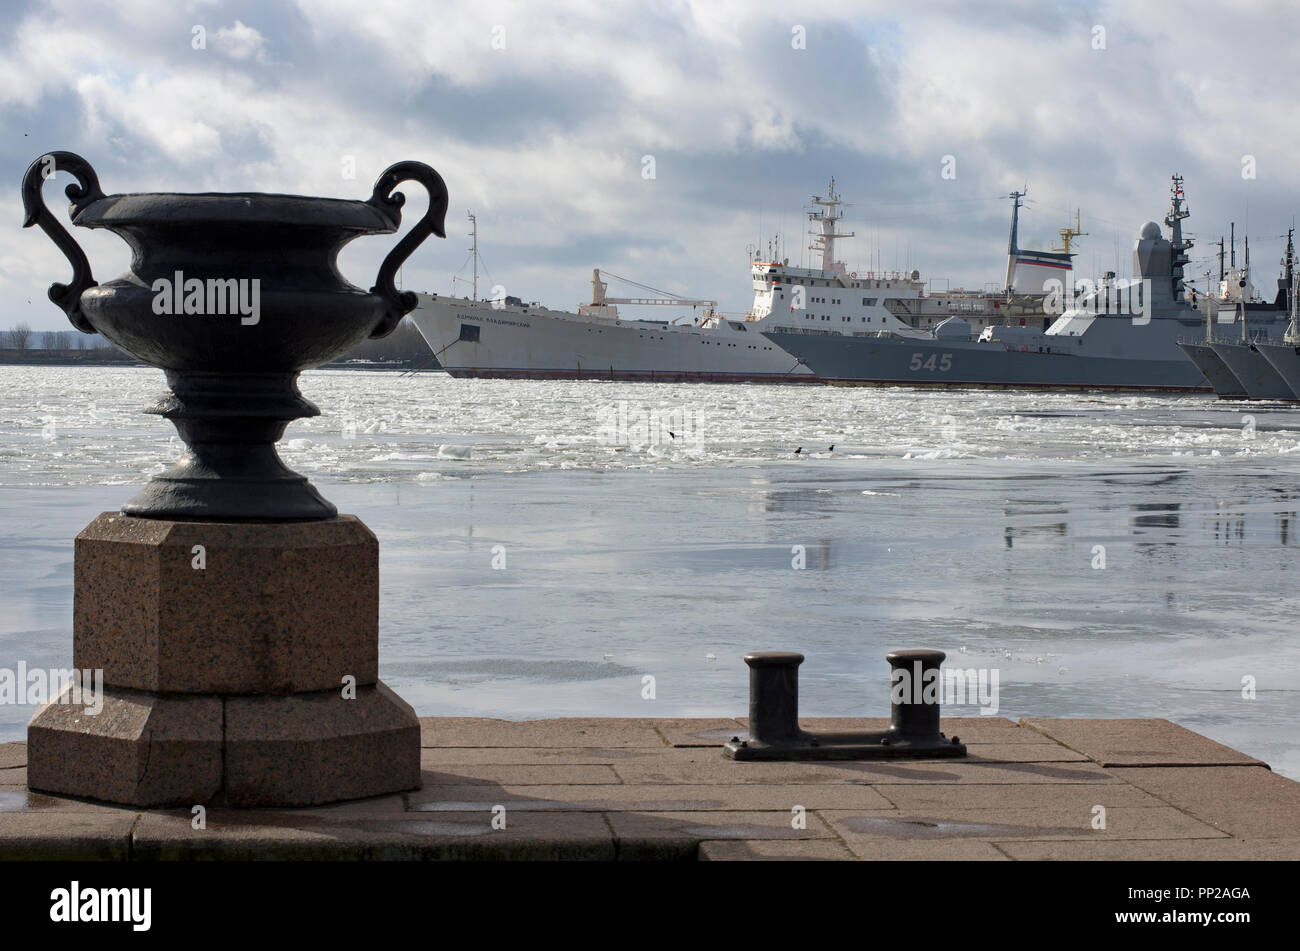 Kronstadt, St. Petersburg, Russia-March 15, 2017: Oceanographic research ship 'Admiral Vladimirsky' and patrol ships of the Baltic Fleet in the ice-co - Stock Image